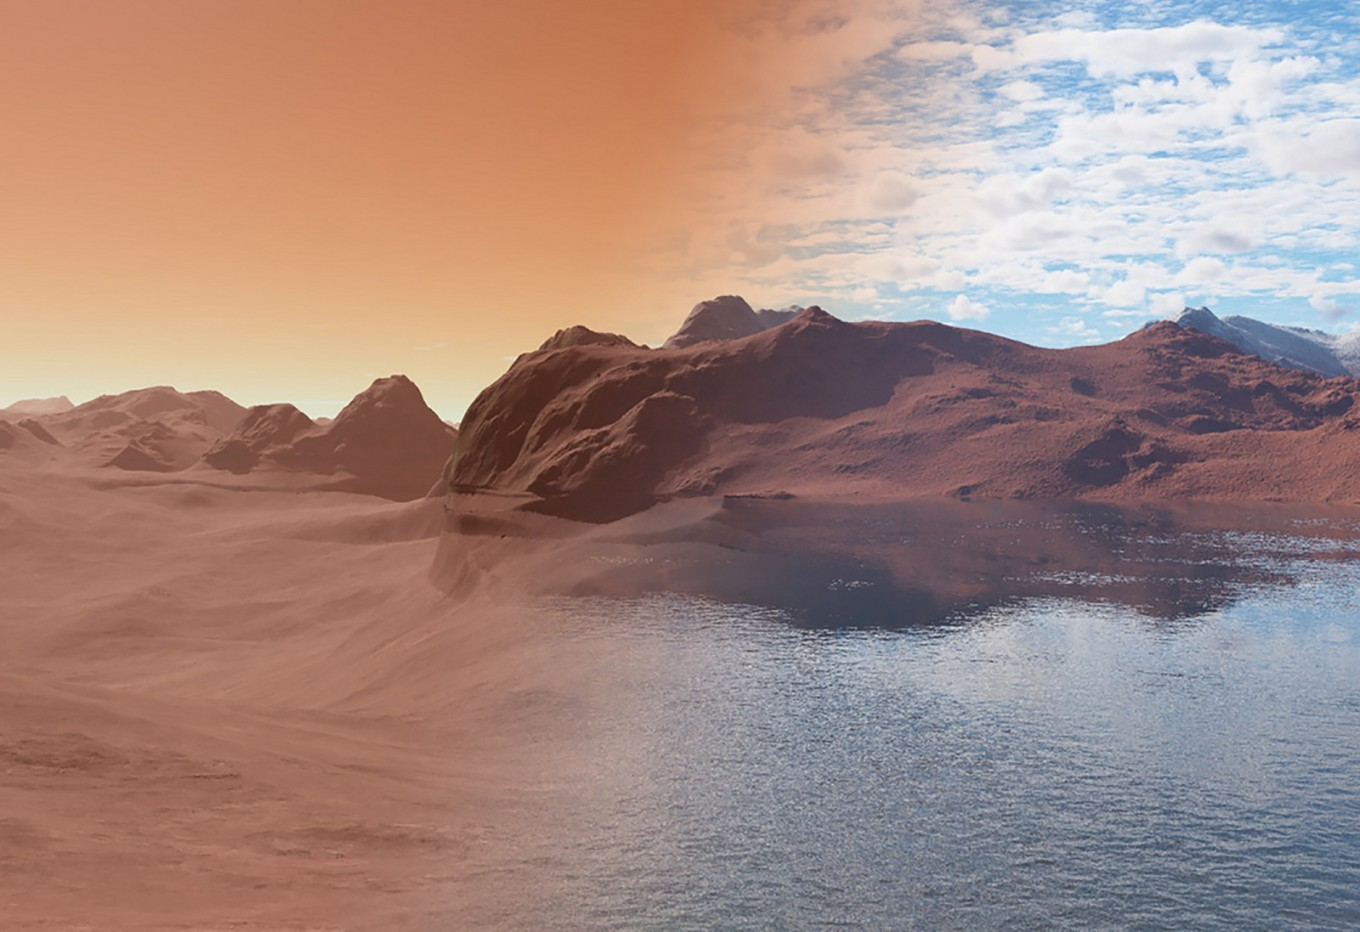 Thirsty rocks may contain the missing water of Mars